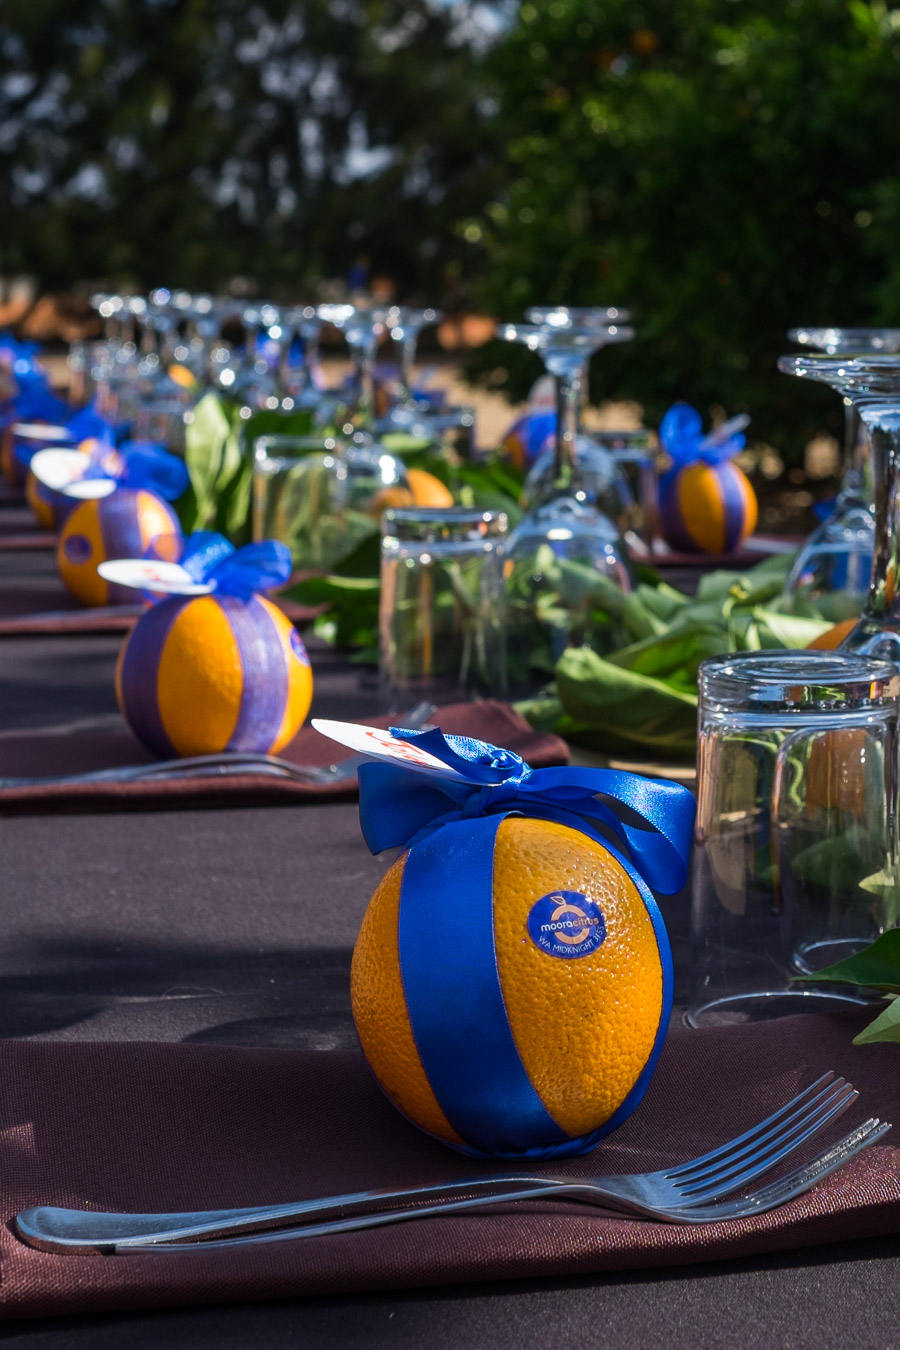 The table setting included a Midknight Summer orange for each guest.